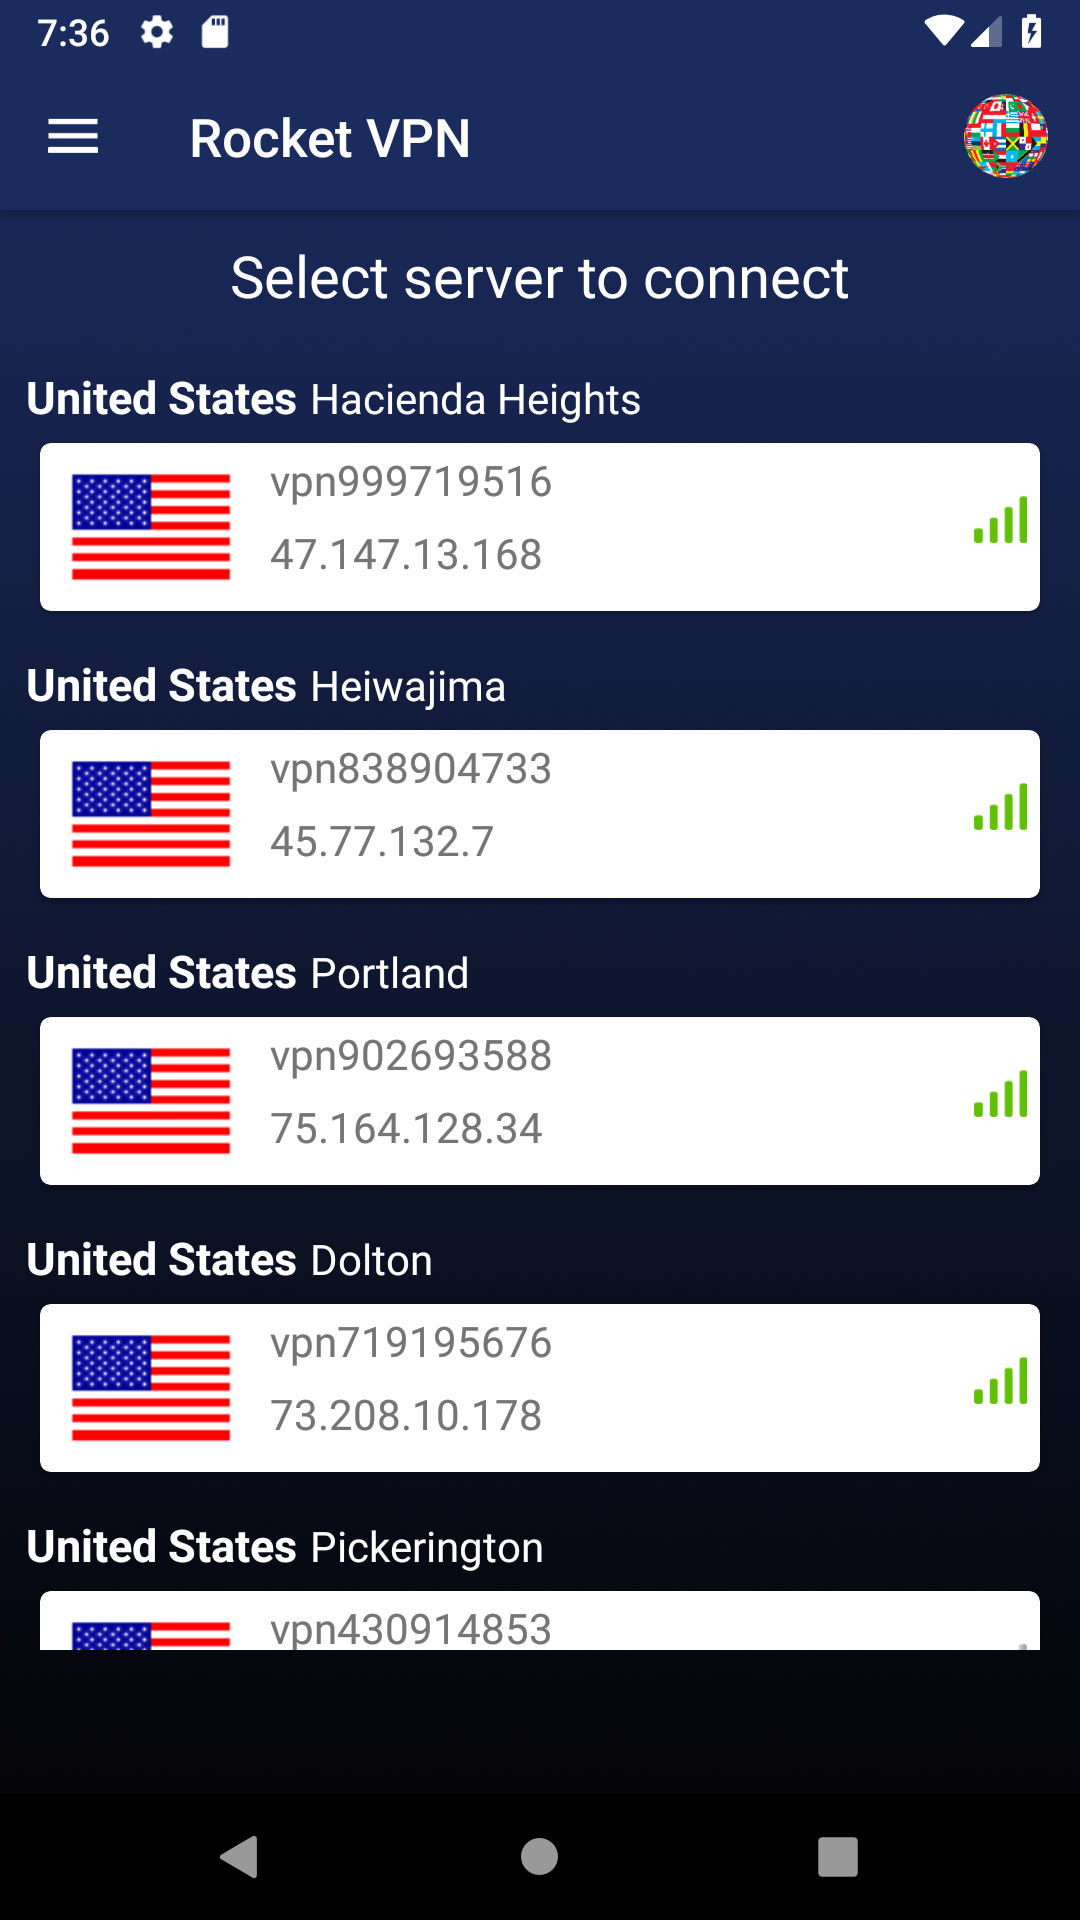 Amazon.com: Rocket VPN Shield Gate Proxy App: Private Internet: Appstore for Android